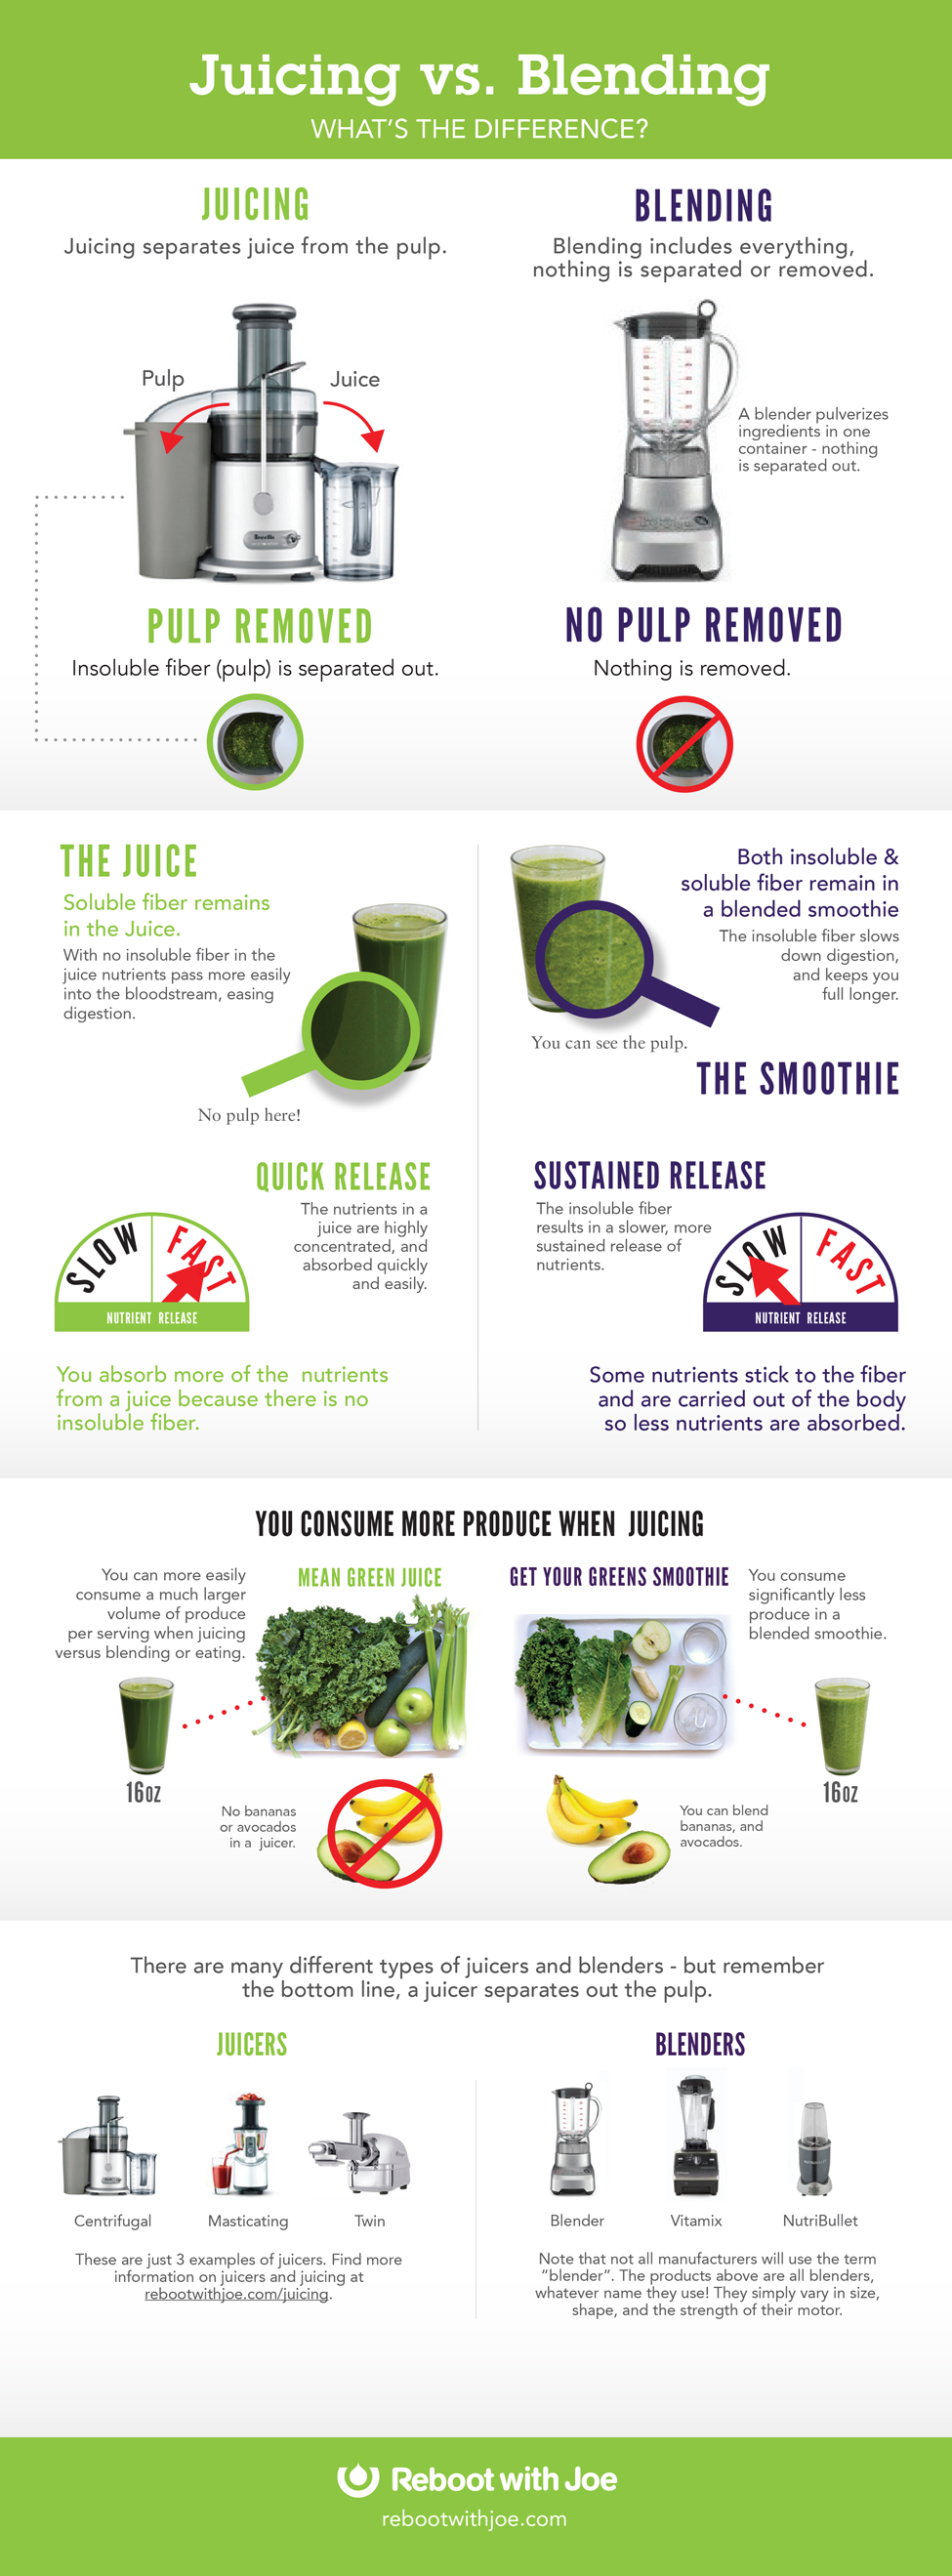 Juicing_vs_Blending_Infographic